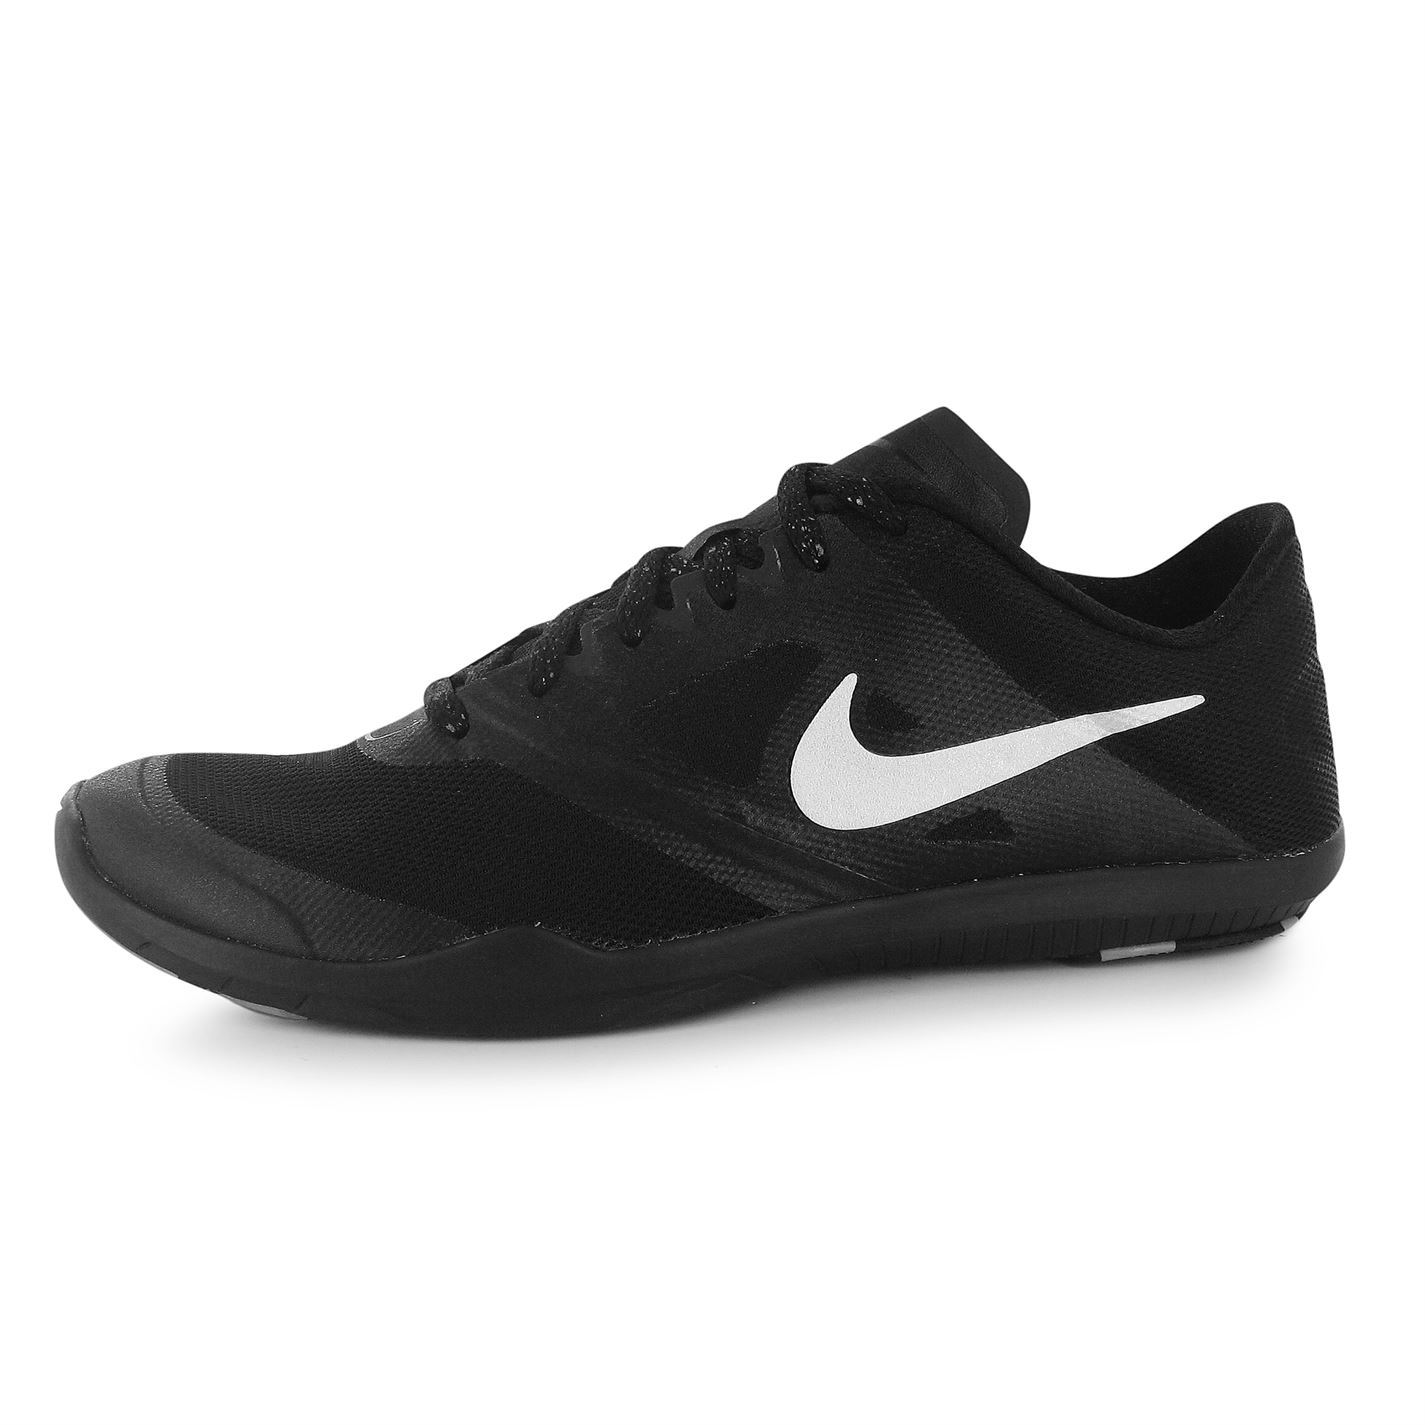 Nike Studio 2 Fitness Trainers Womens Black/Silver Gym Workout Sneakers Shoes | EBay